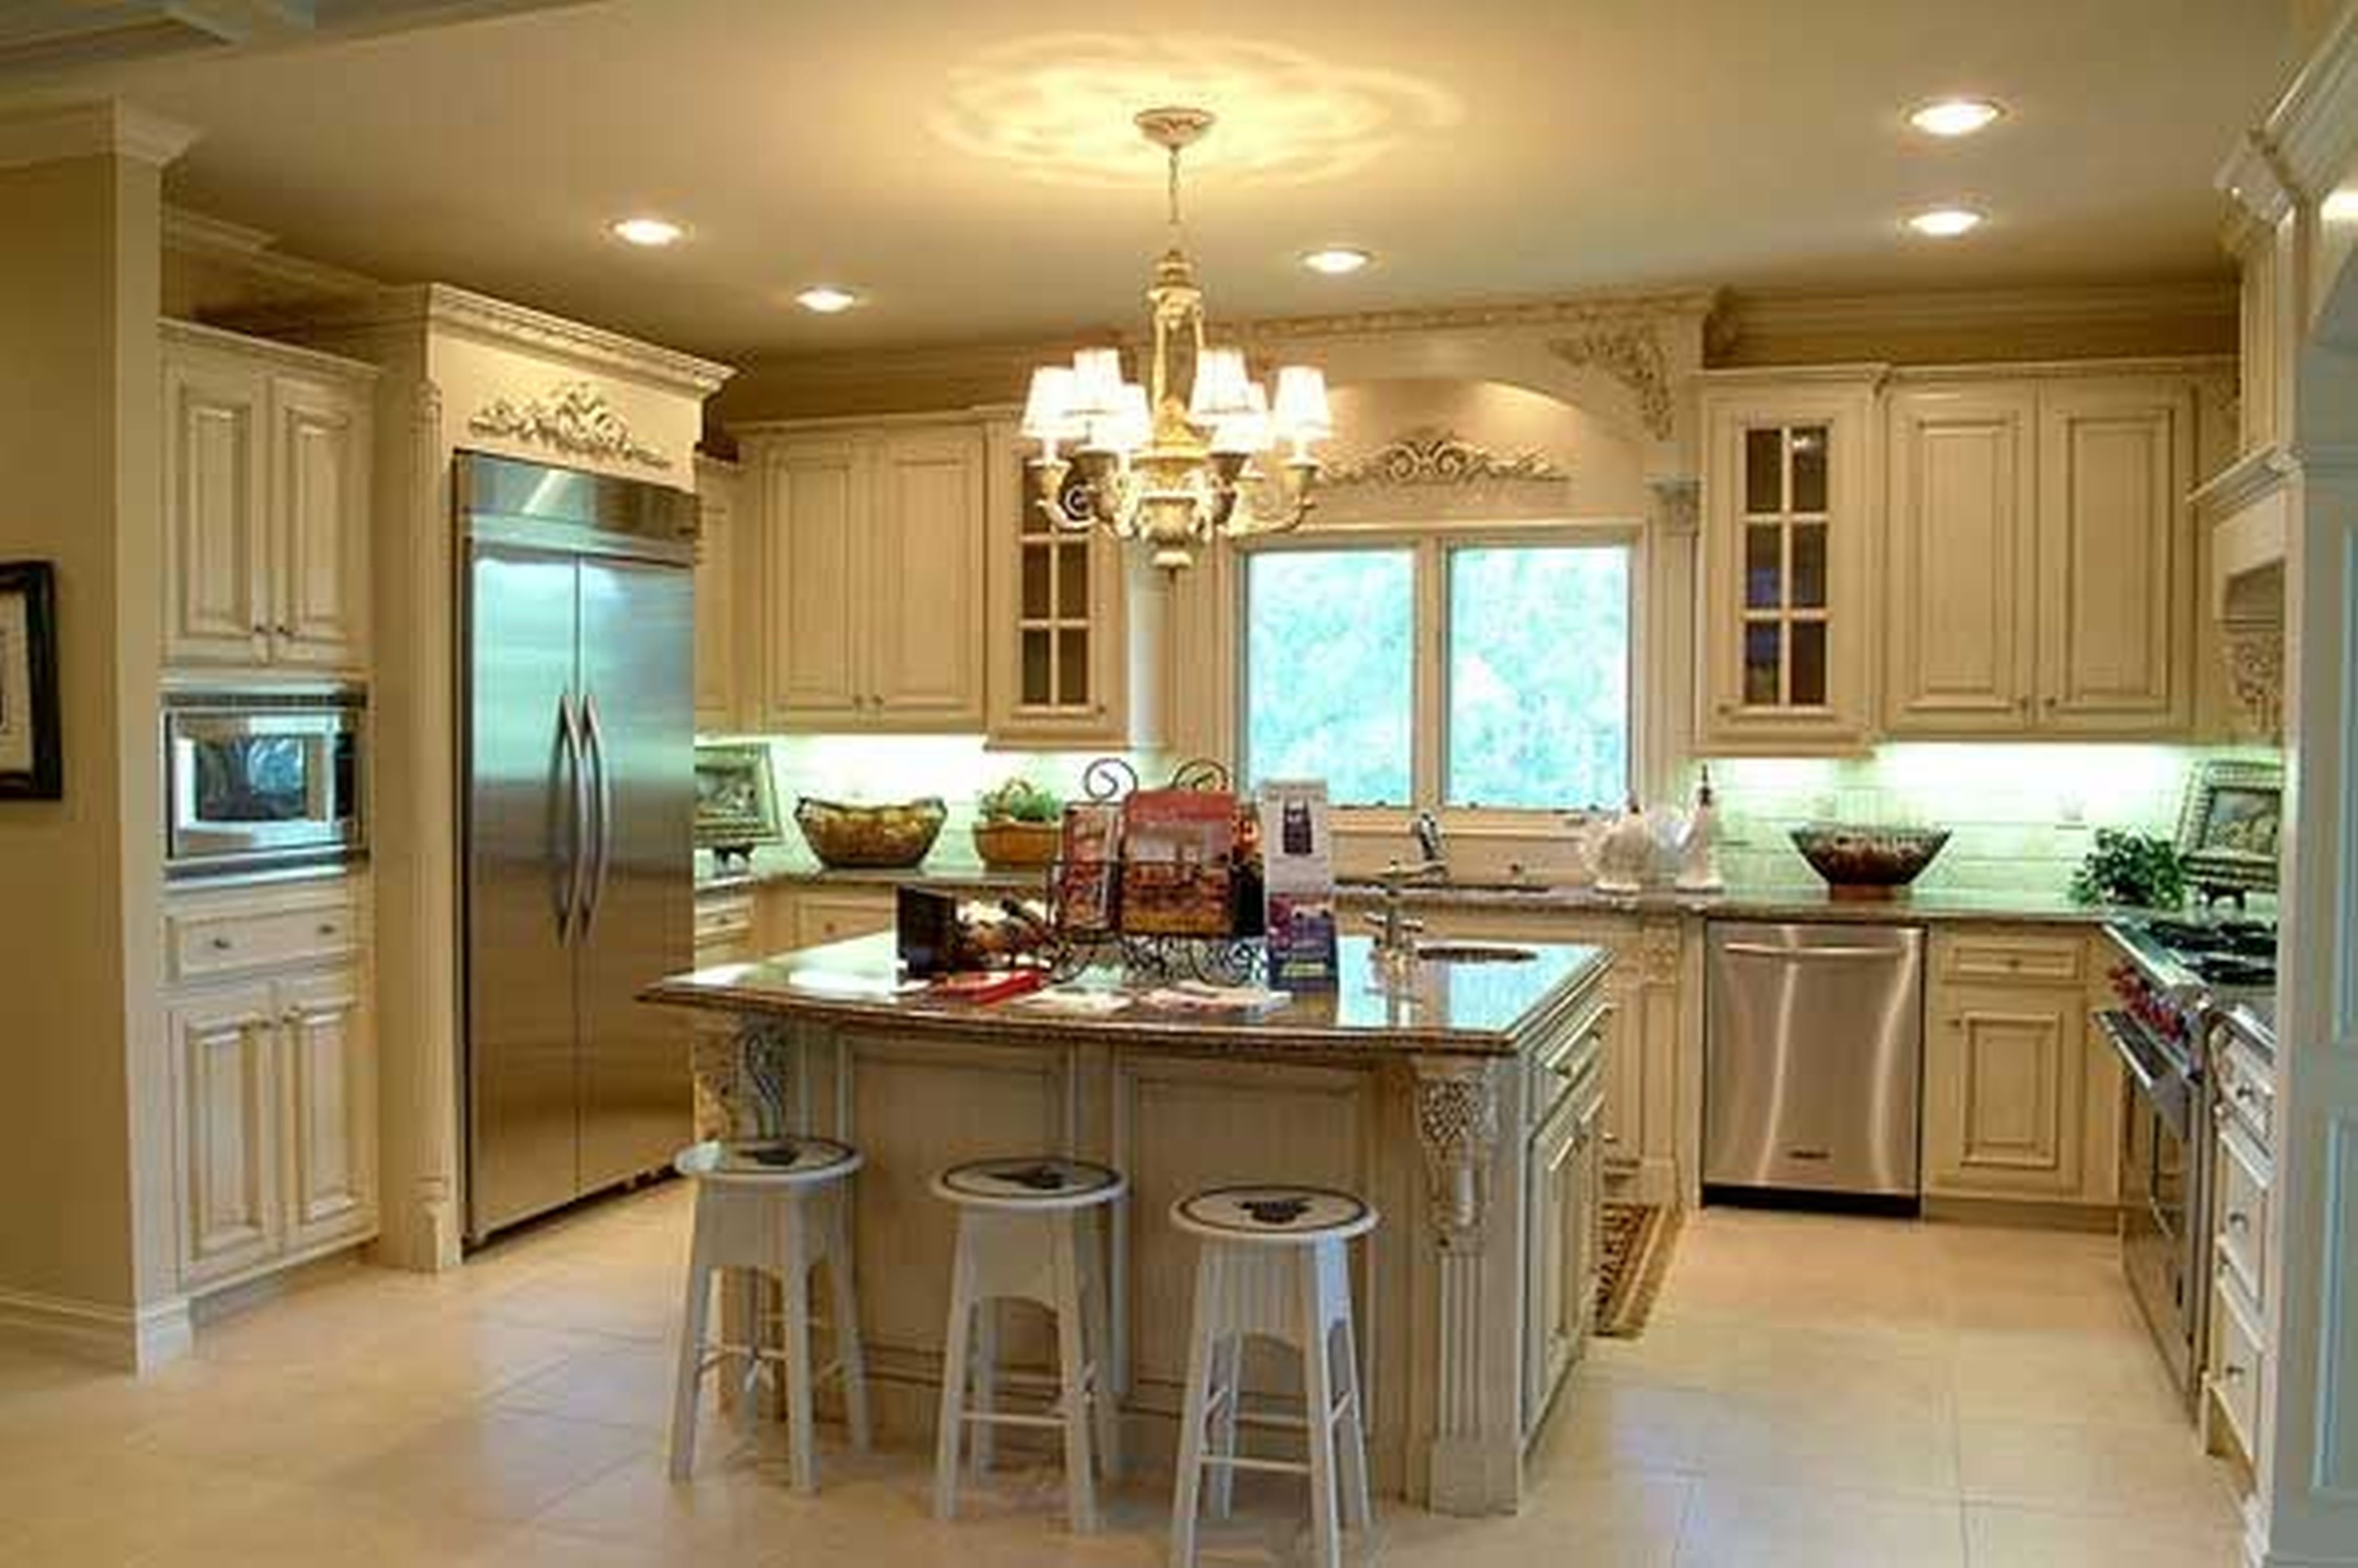 10 Fabulous Kitchen Design Ideas With Island kitchen cool on kitchen islands with stove built in room design 2021